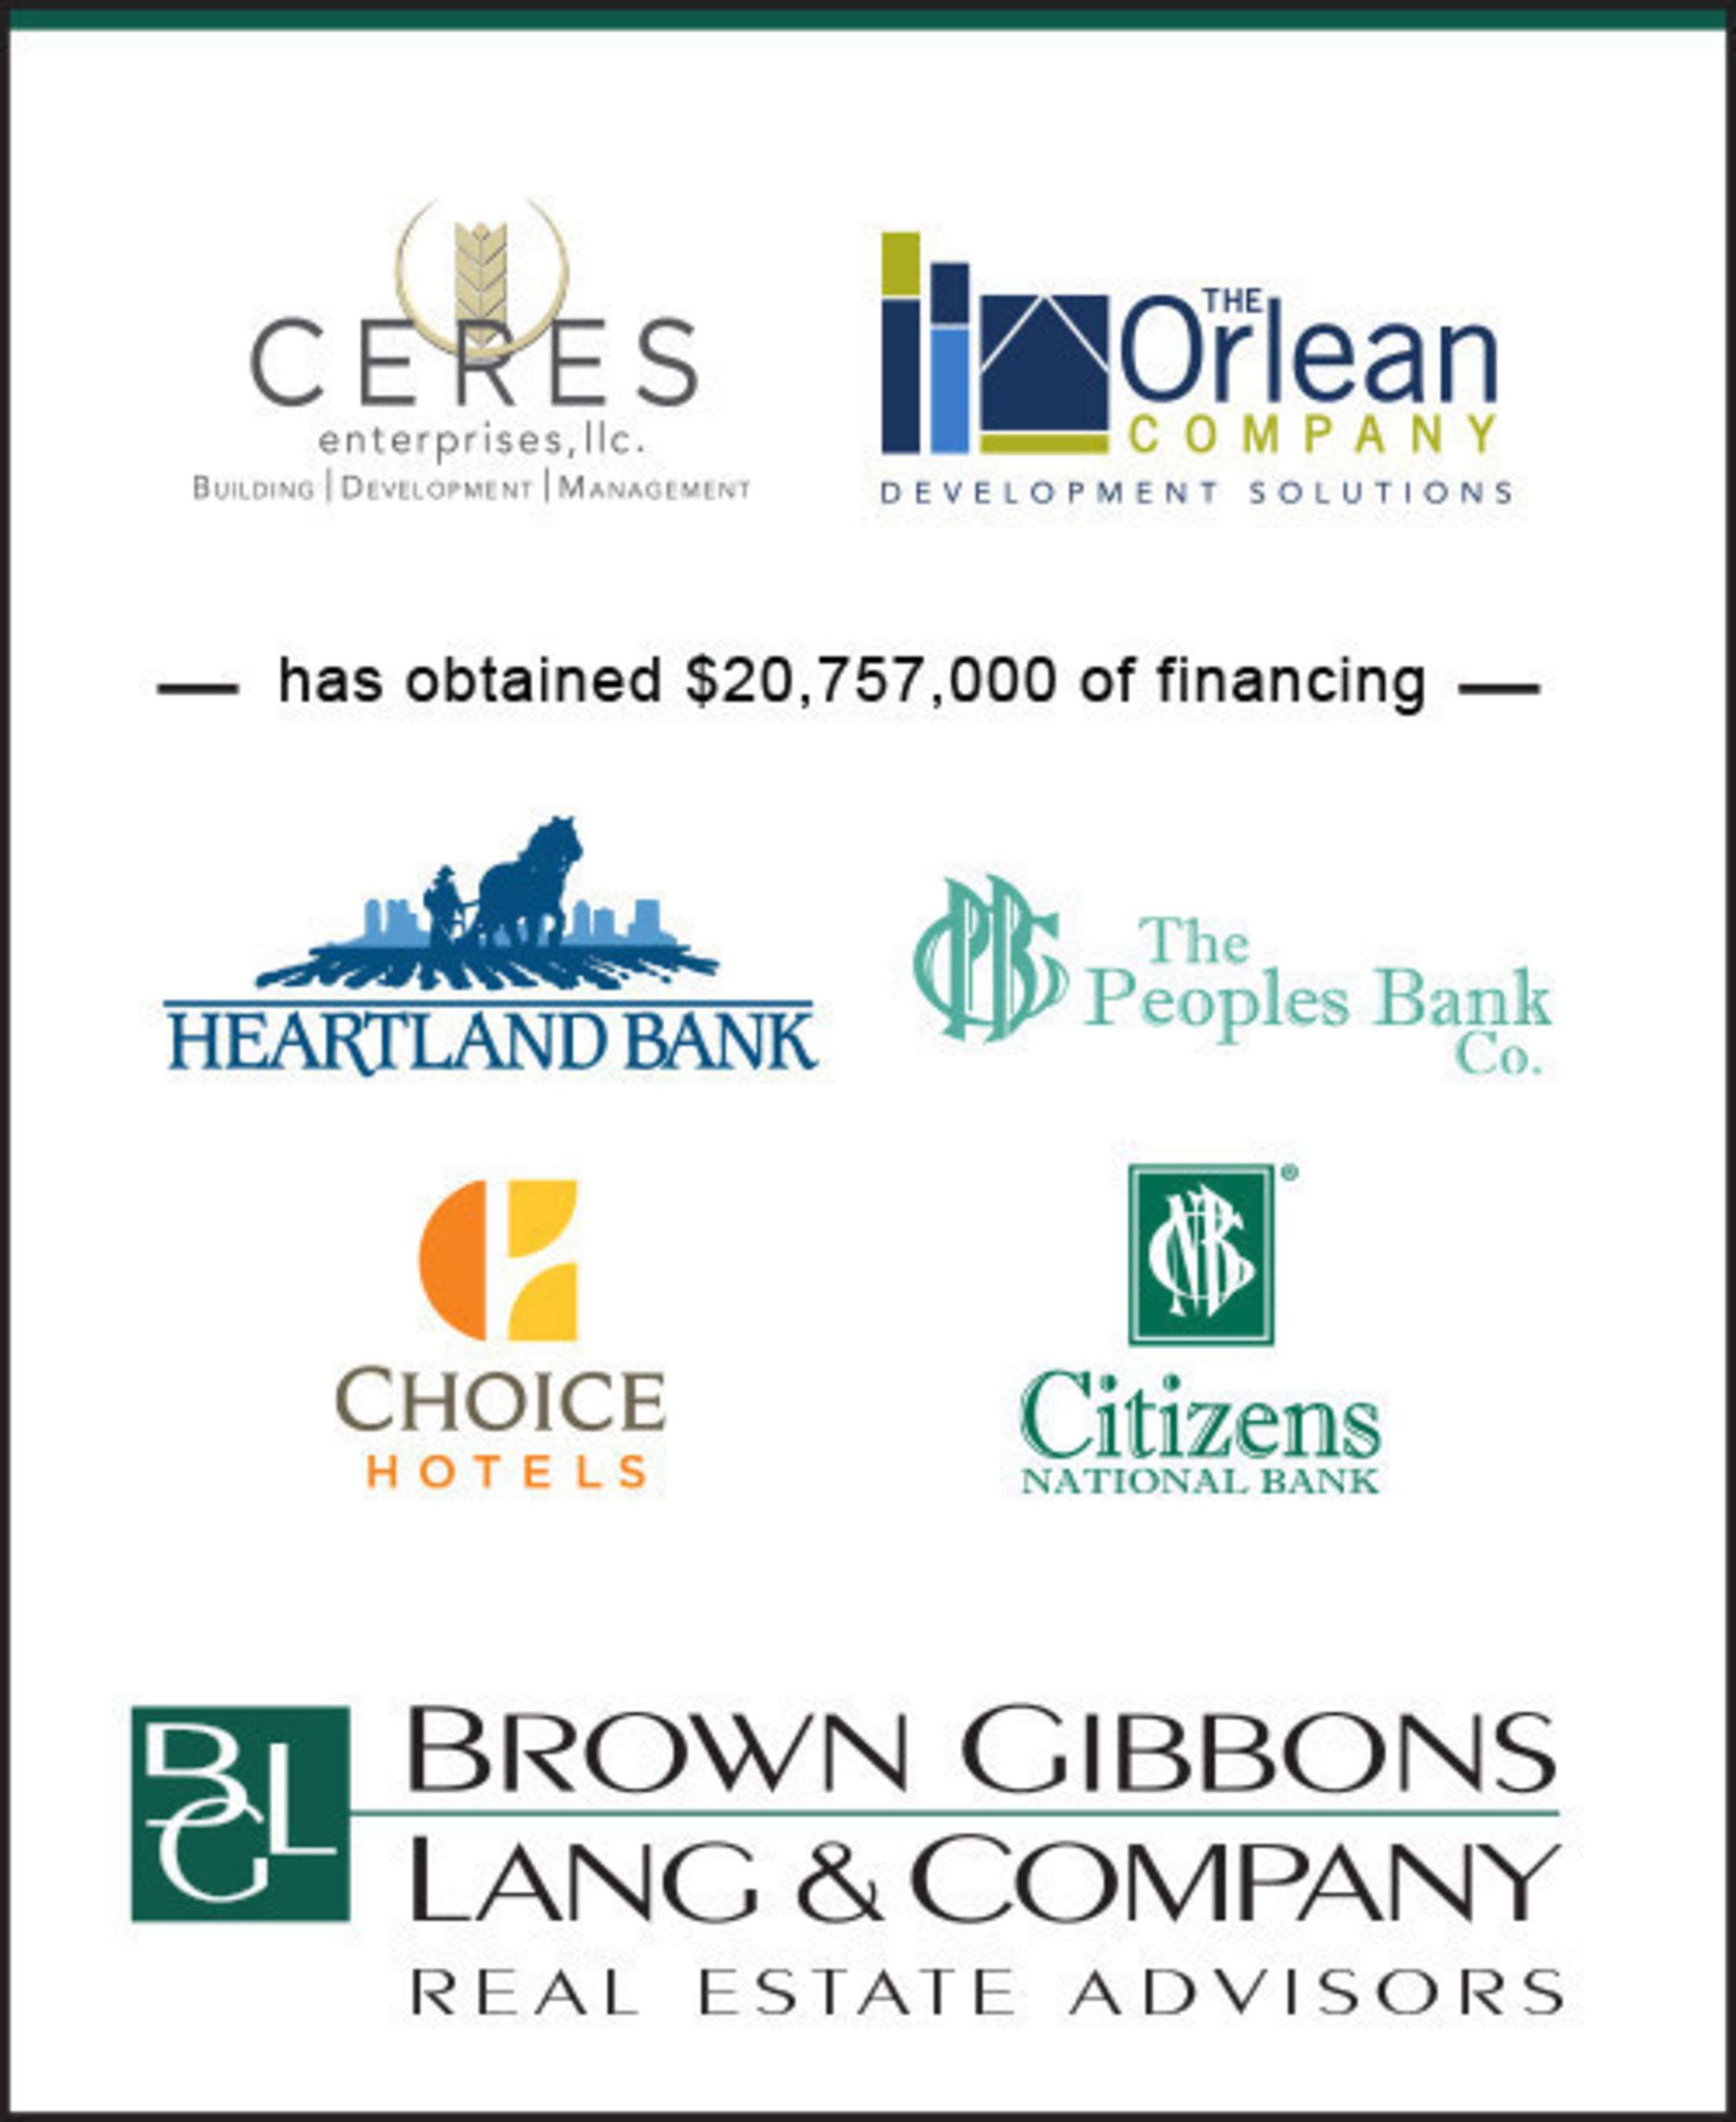 BGL Real Estate Advisors LLC is pleased to announce the successful completion of development financing for Ceres Enterprises LLC and The Orlean Company.  The capital structure will support the third development of Choice Hotel's new limited service brand in Westfield, Indiana, joining properties in Noblesville, Indiana and Avon, Ohio.